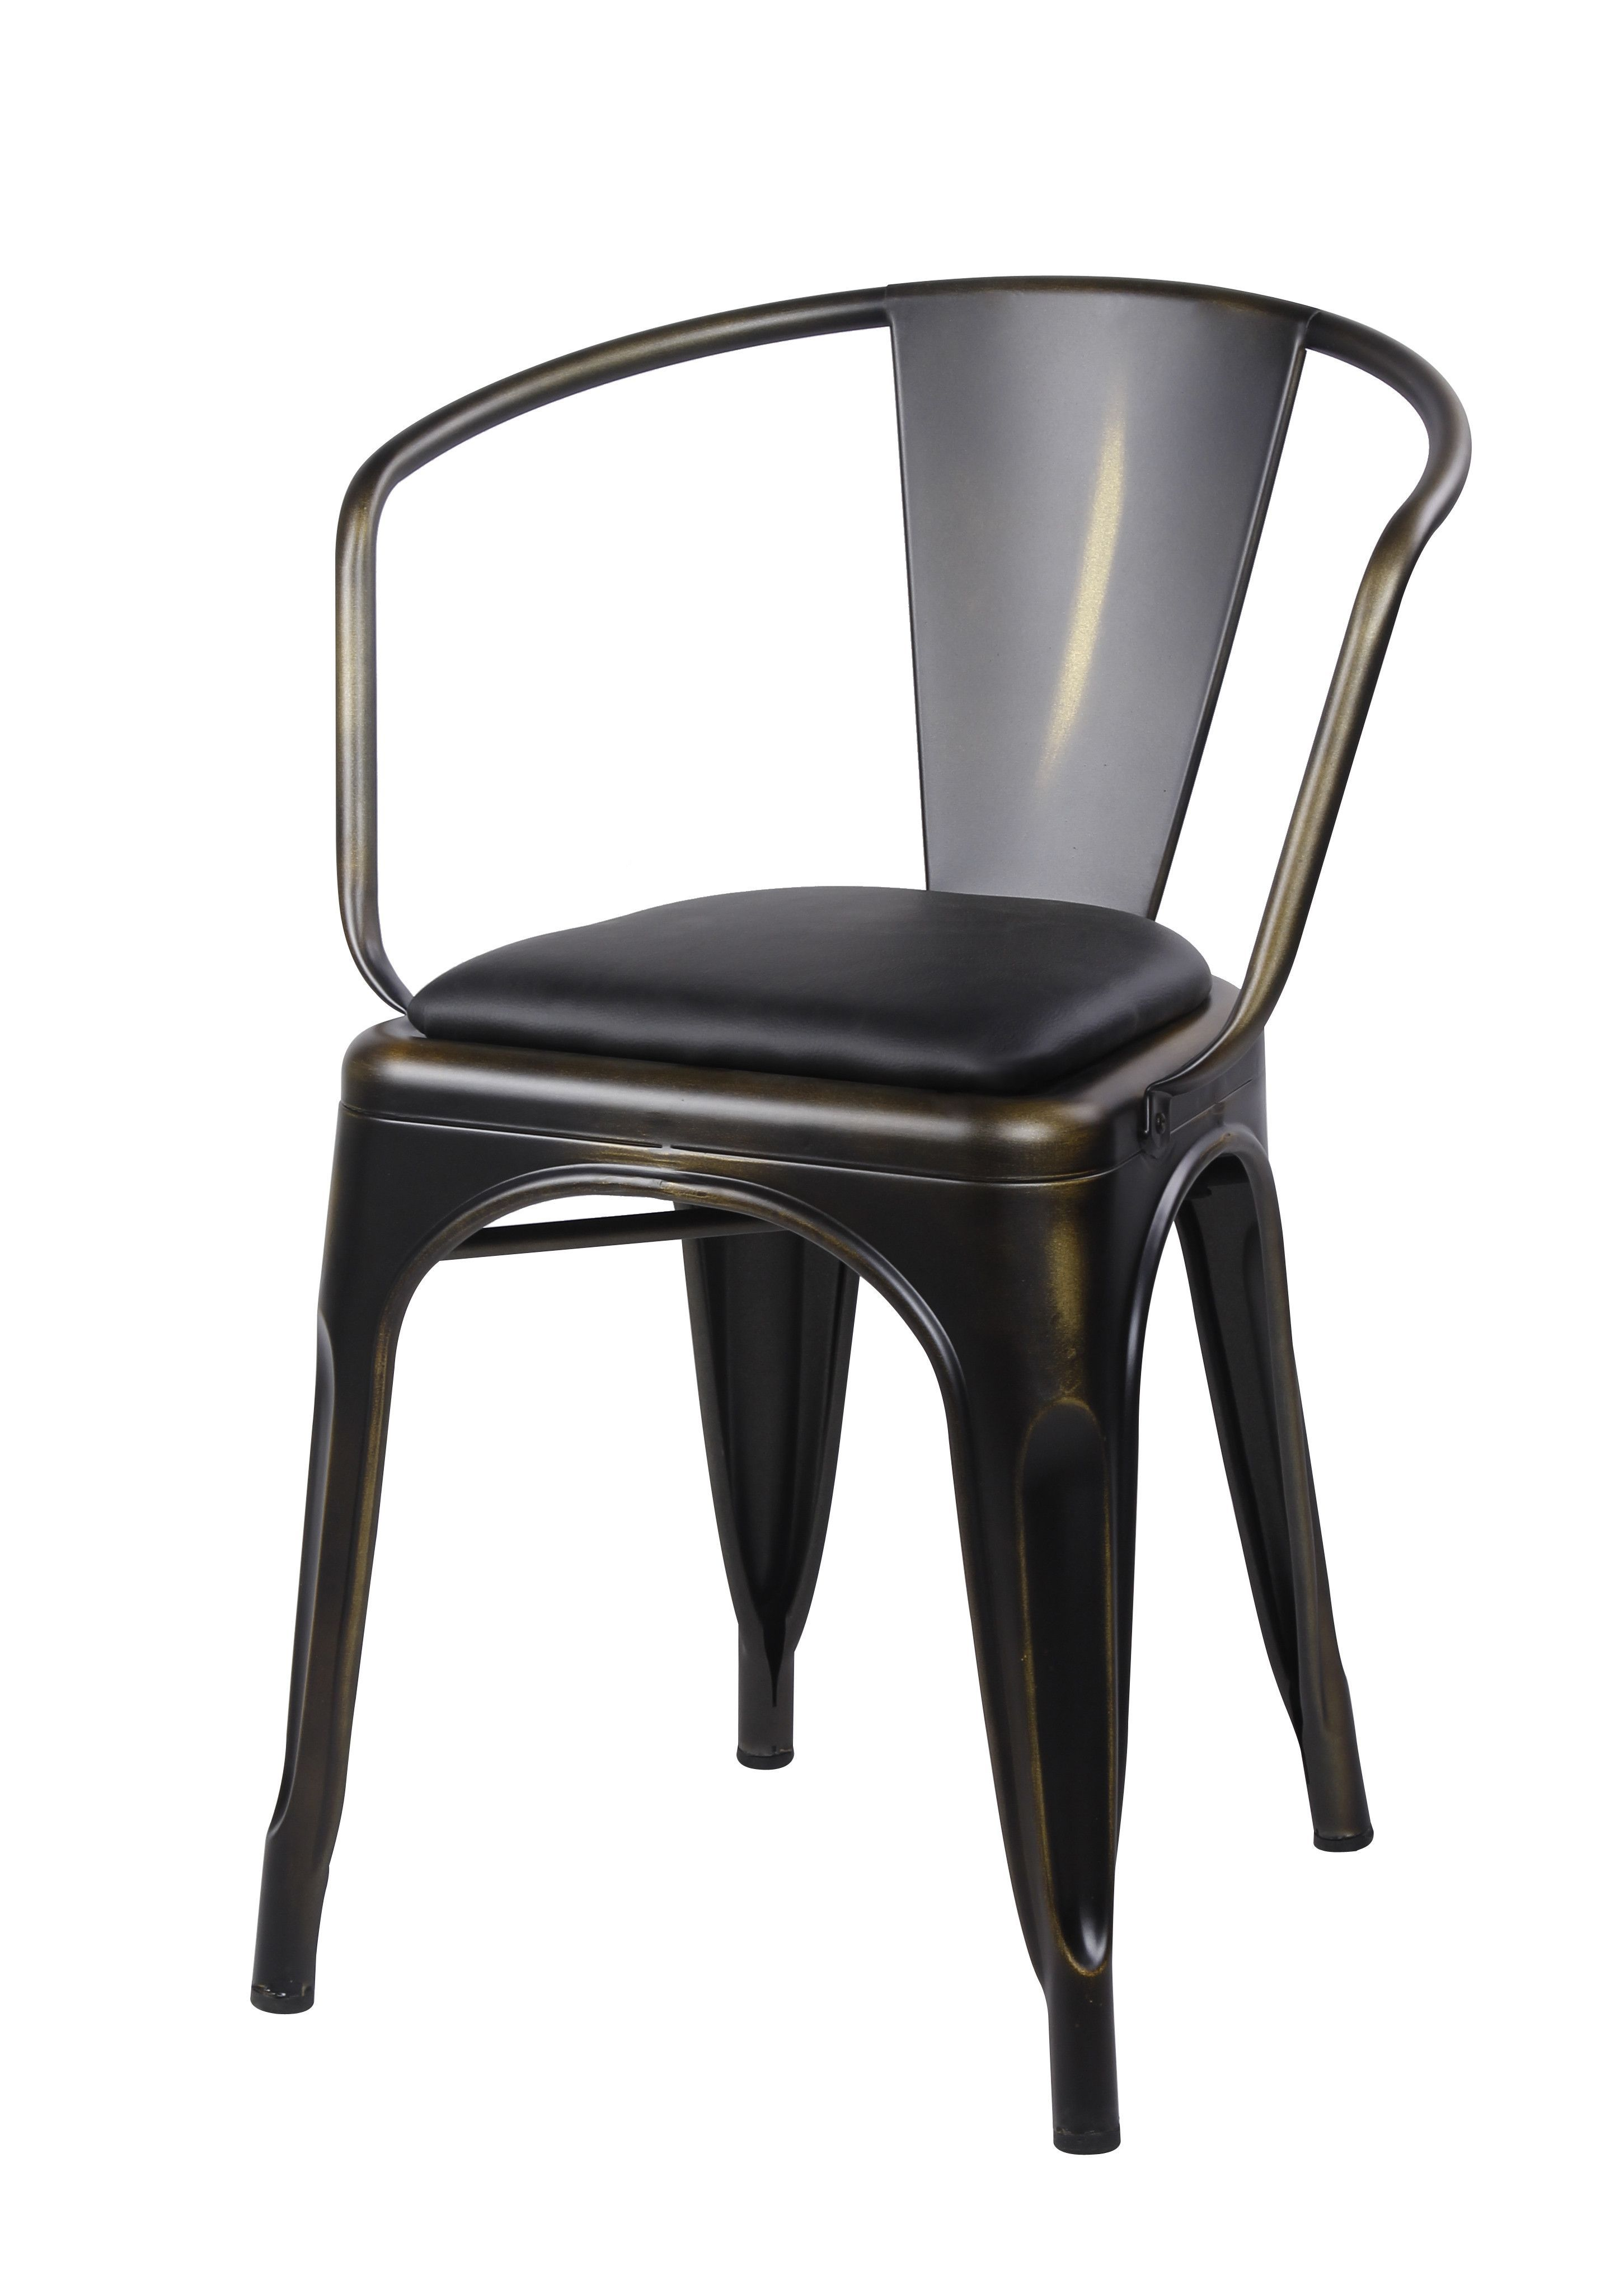 GIA Metal Dining Chairs with Back - Leather Cushion Seat - Tolix Style